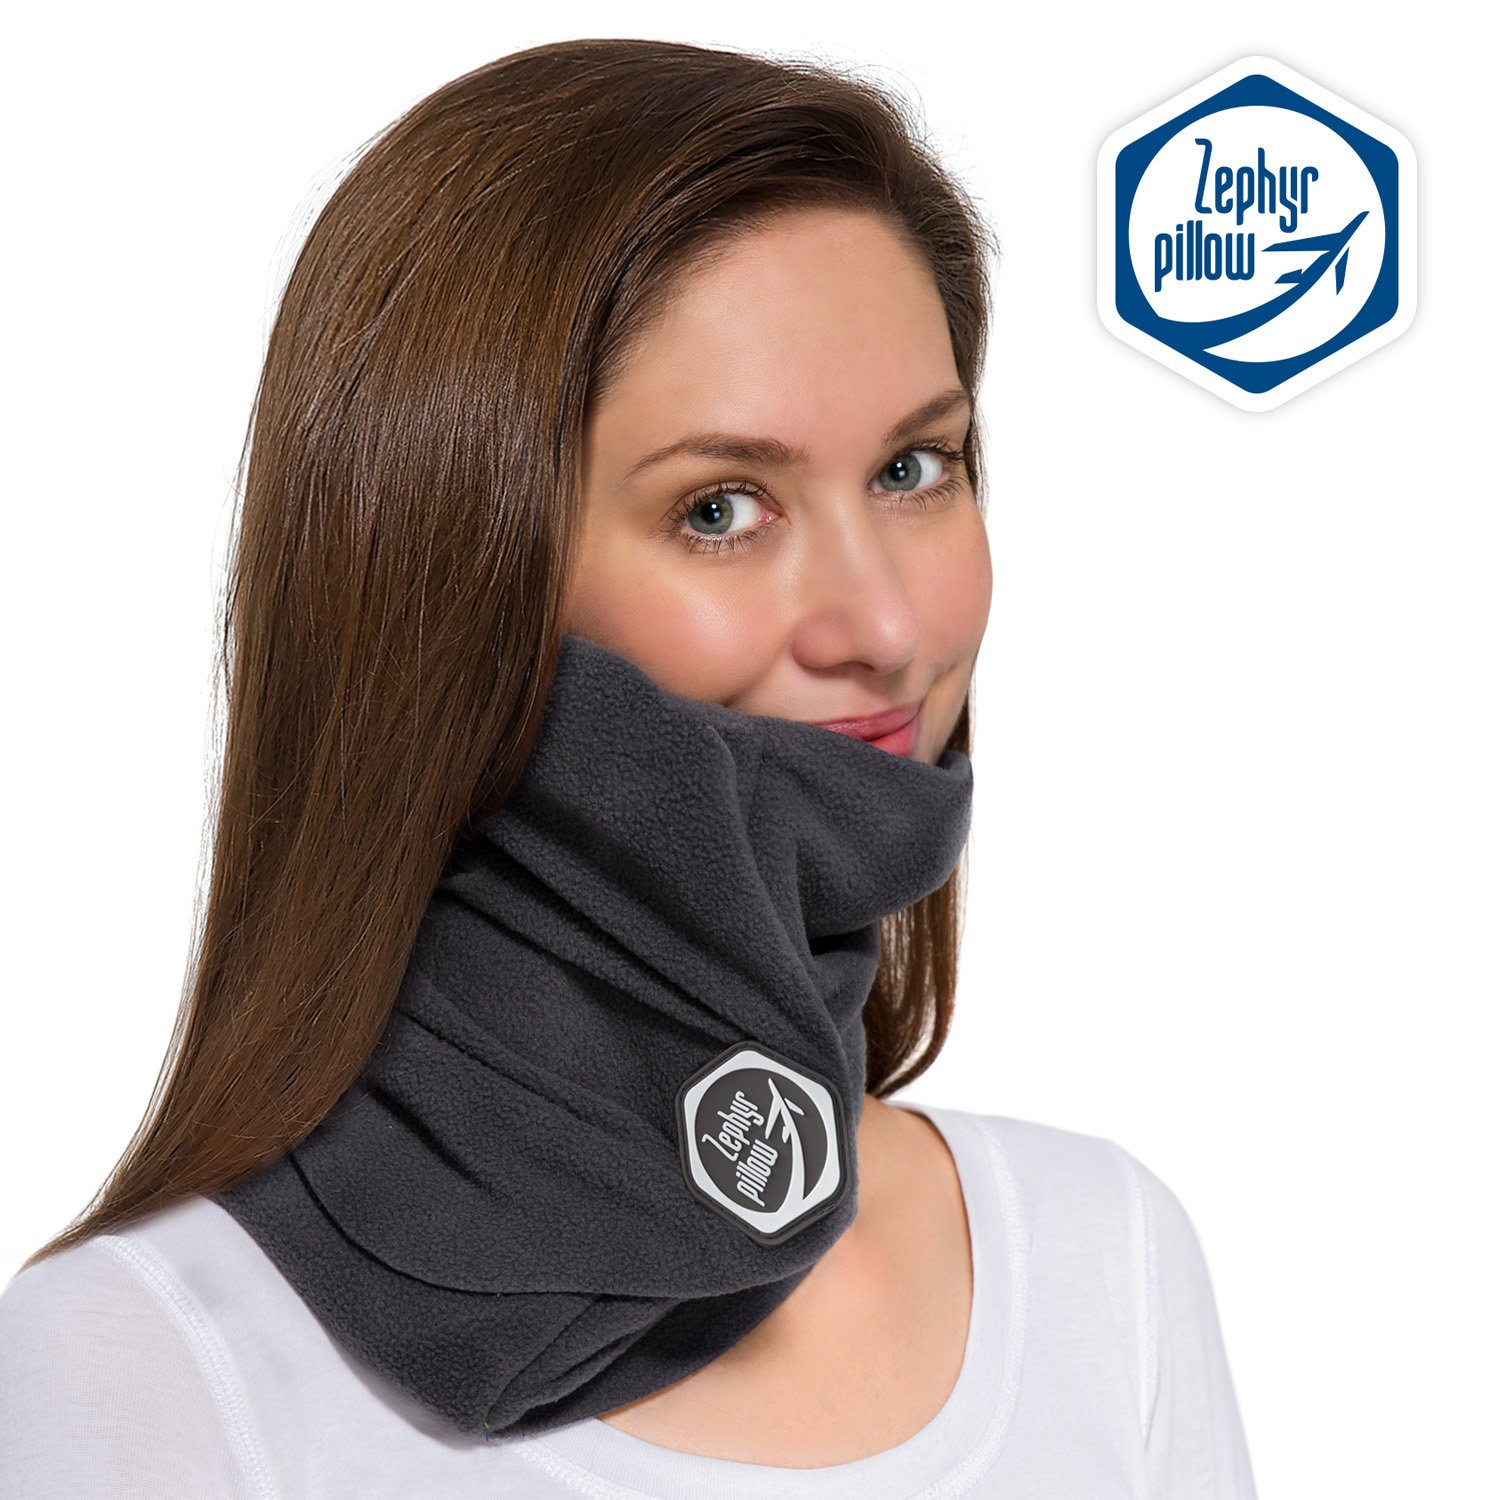 11 Best Neck Brace For Sleeping 2019 Apexhealthandcare Com